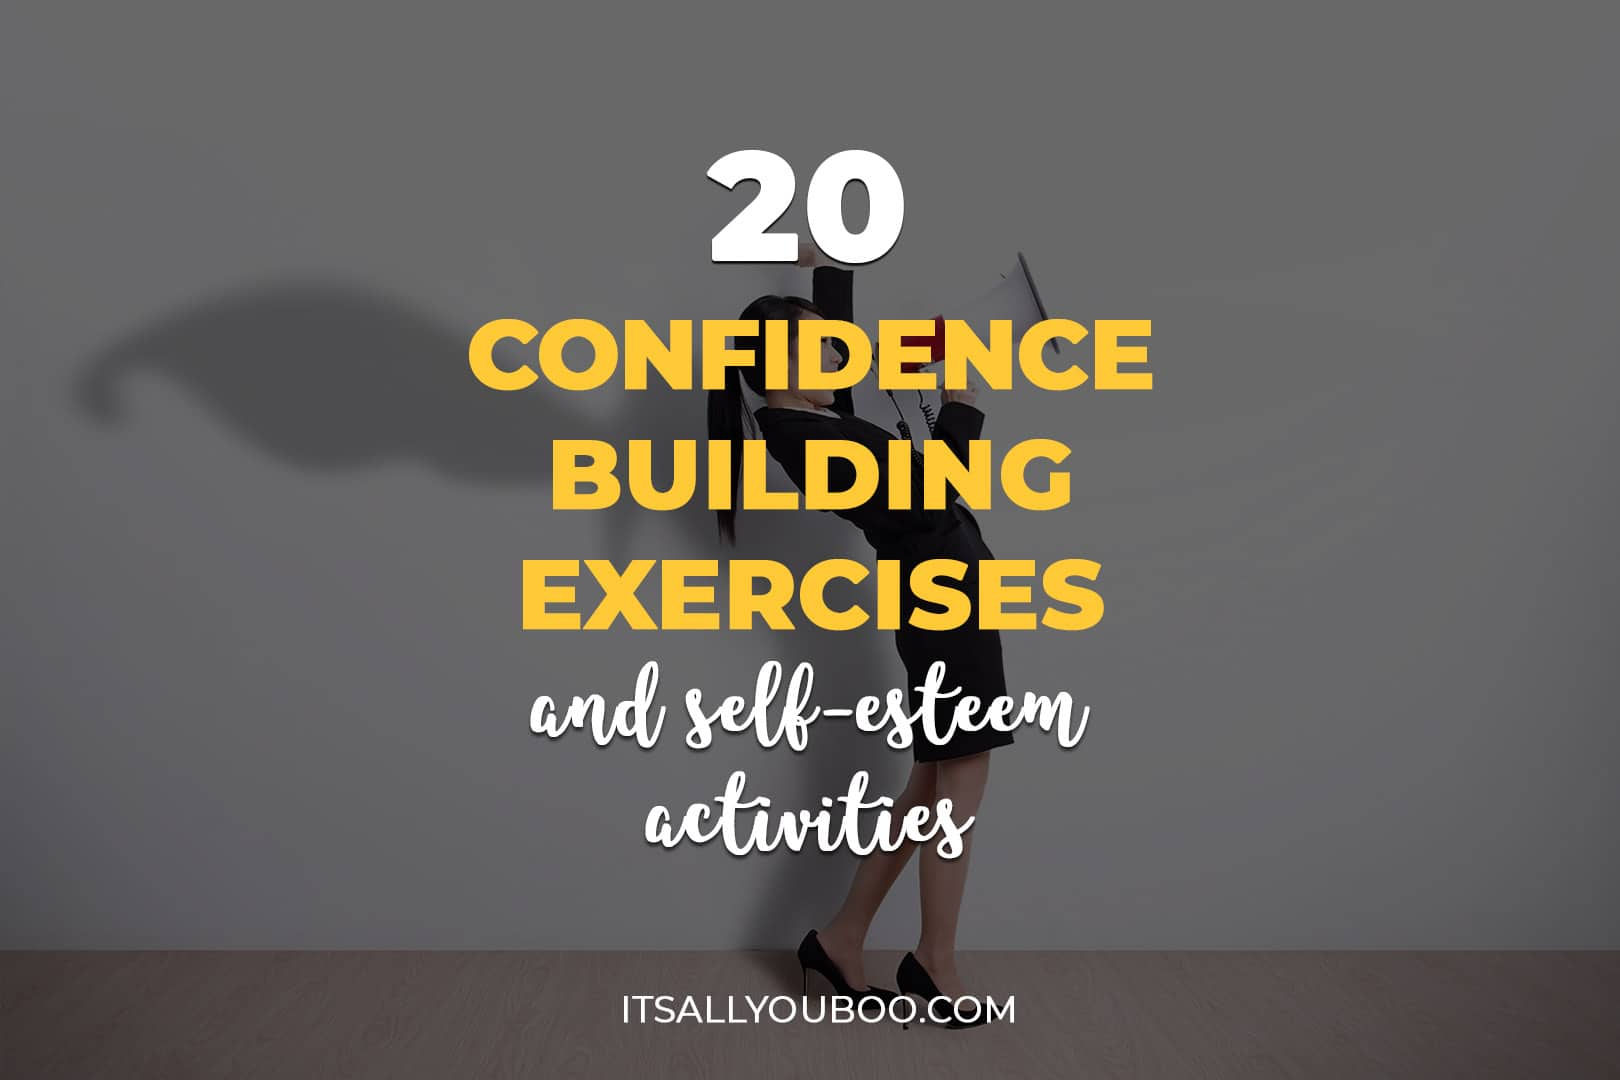 20 Confidence Building Exercises and Self-Esteem Activities